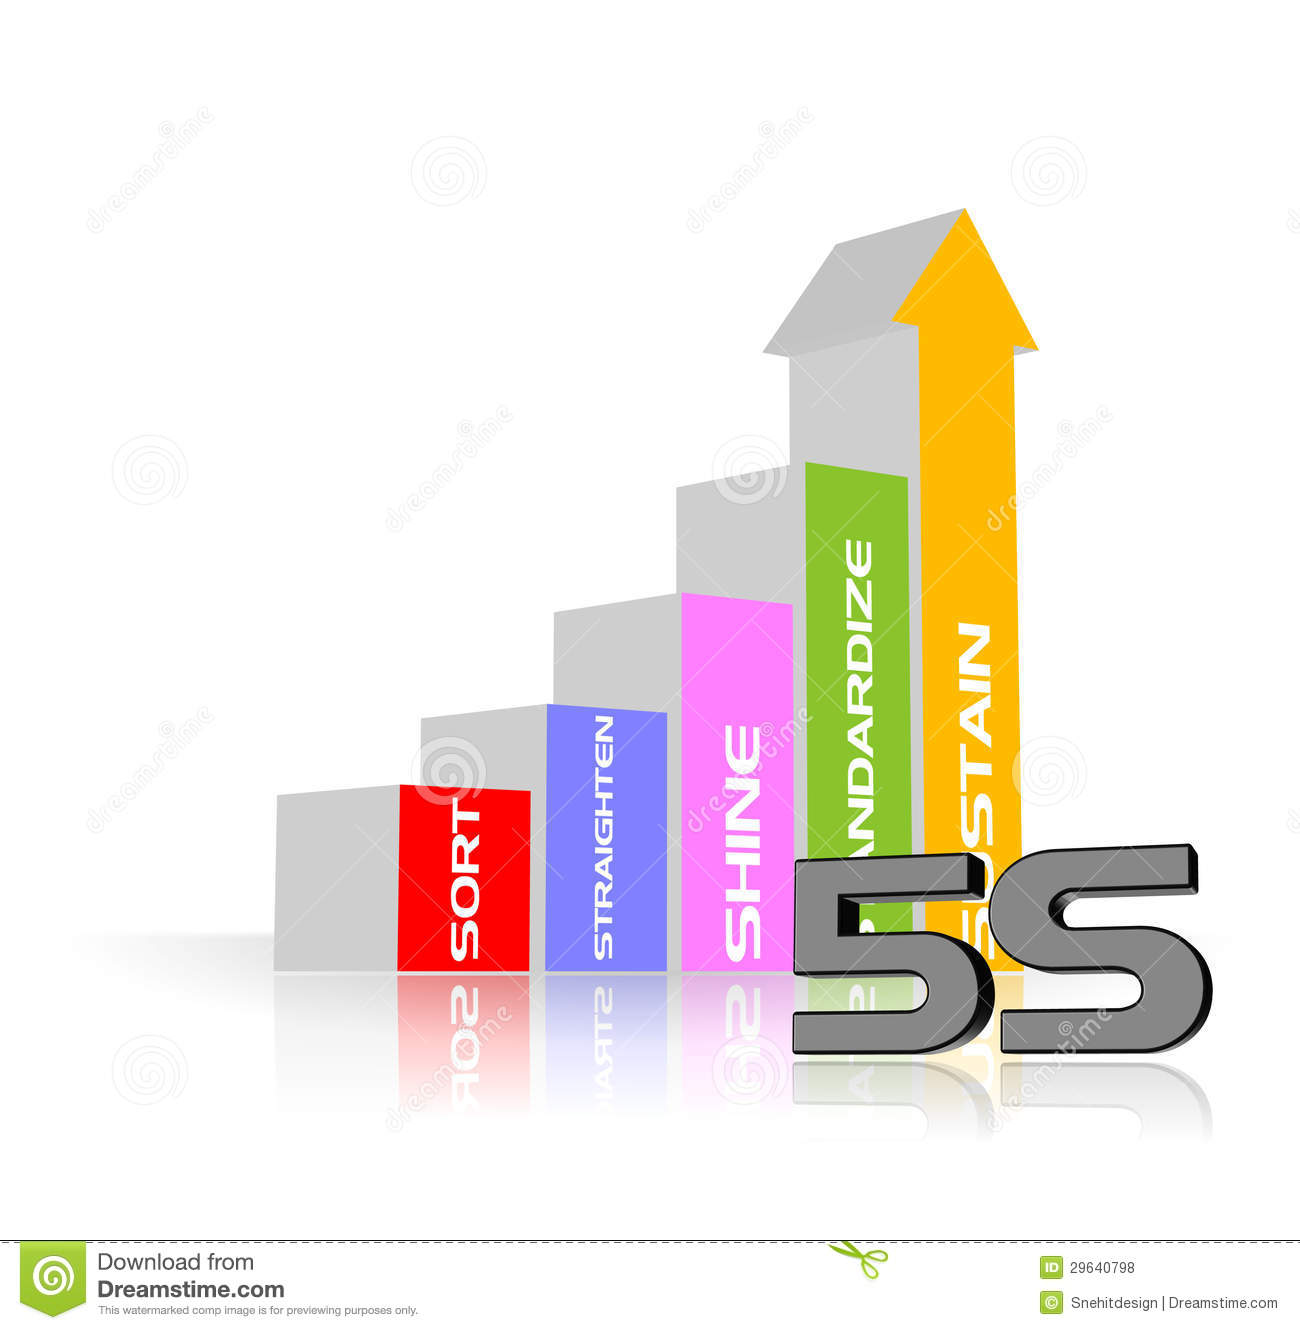 5s methodology 5s is the name of a workplace organization methodology that uses a list of five japanese words which, transliterated and translated into english, start with the letter s the list describes how items are stored and how the new order is maintained.